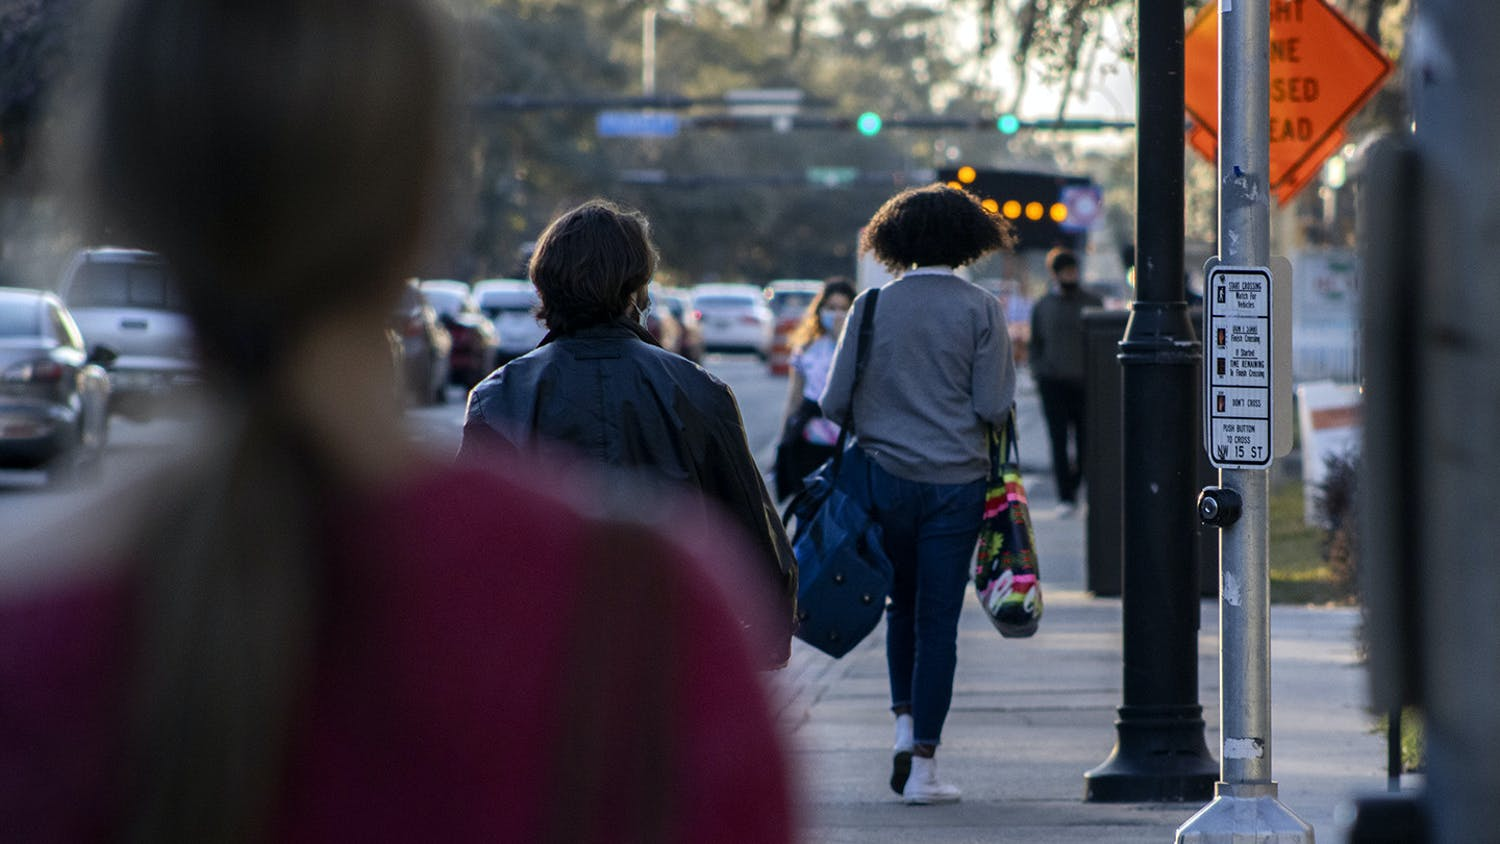 Pedestrians walk down West University Avenue on Wednesday, Feb. 3, 2021. Signs down the road redirect traffic due to ongoing construction on the road, near UF campus and Midtown.